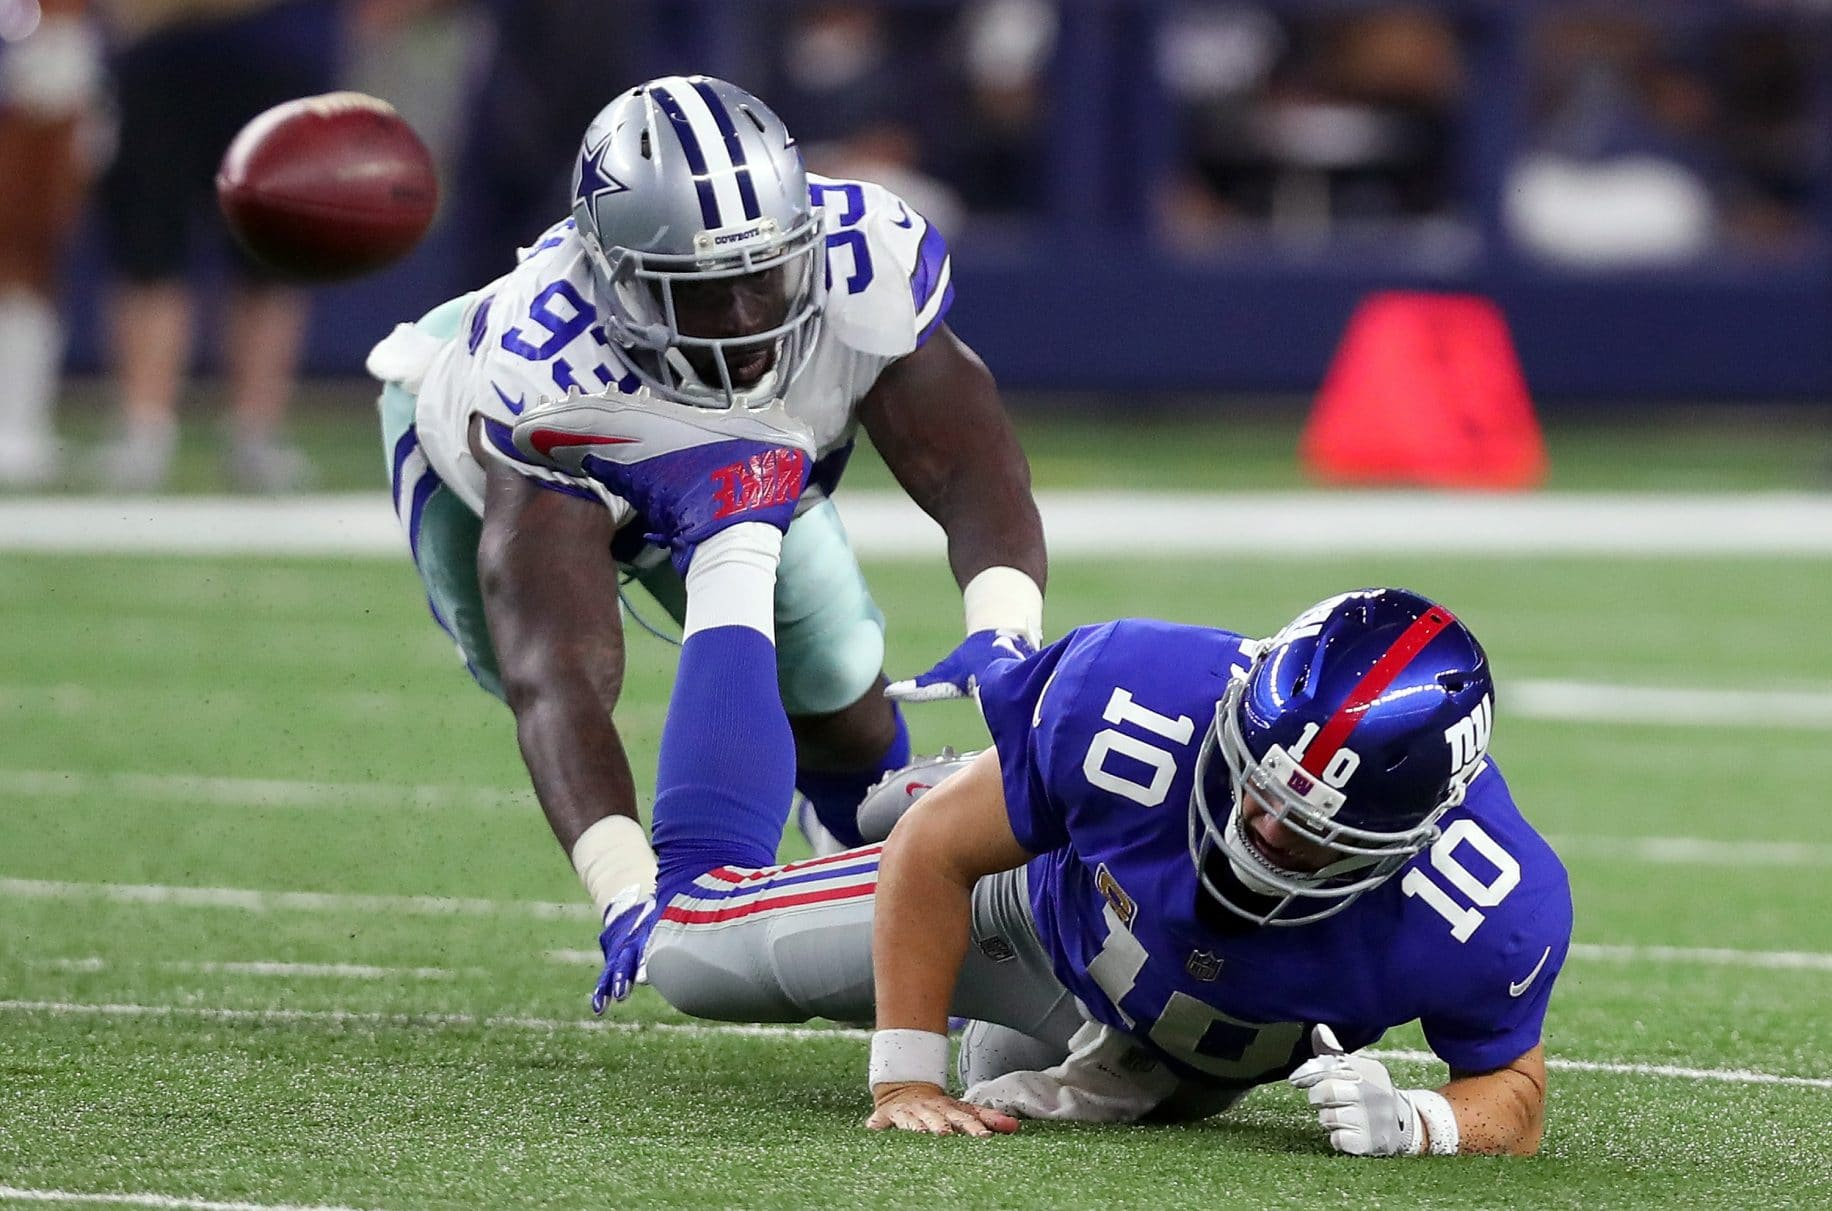 New York Giants Face NFC East Rival Dallas Cowboys in Week 14